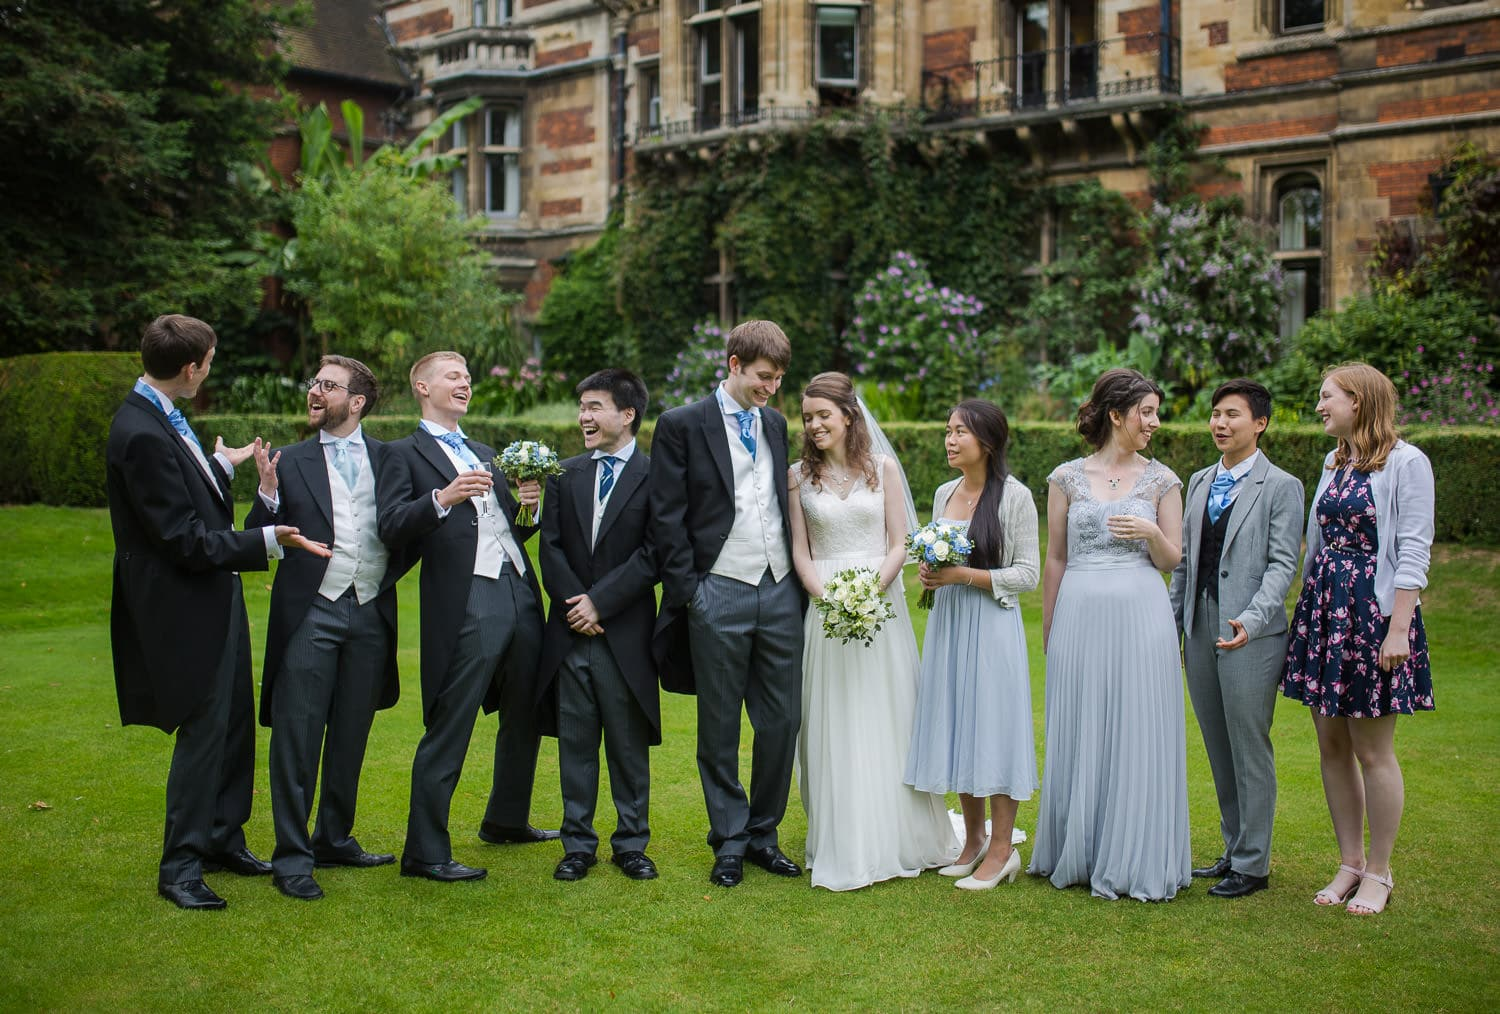 Relaxed group shot at college wedding